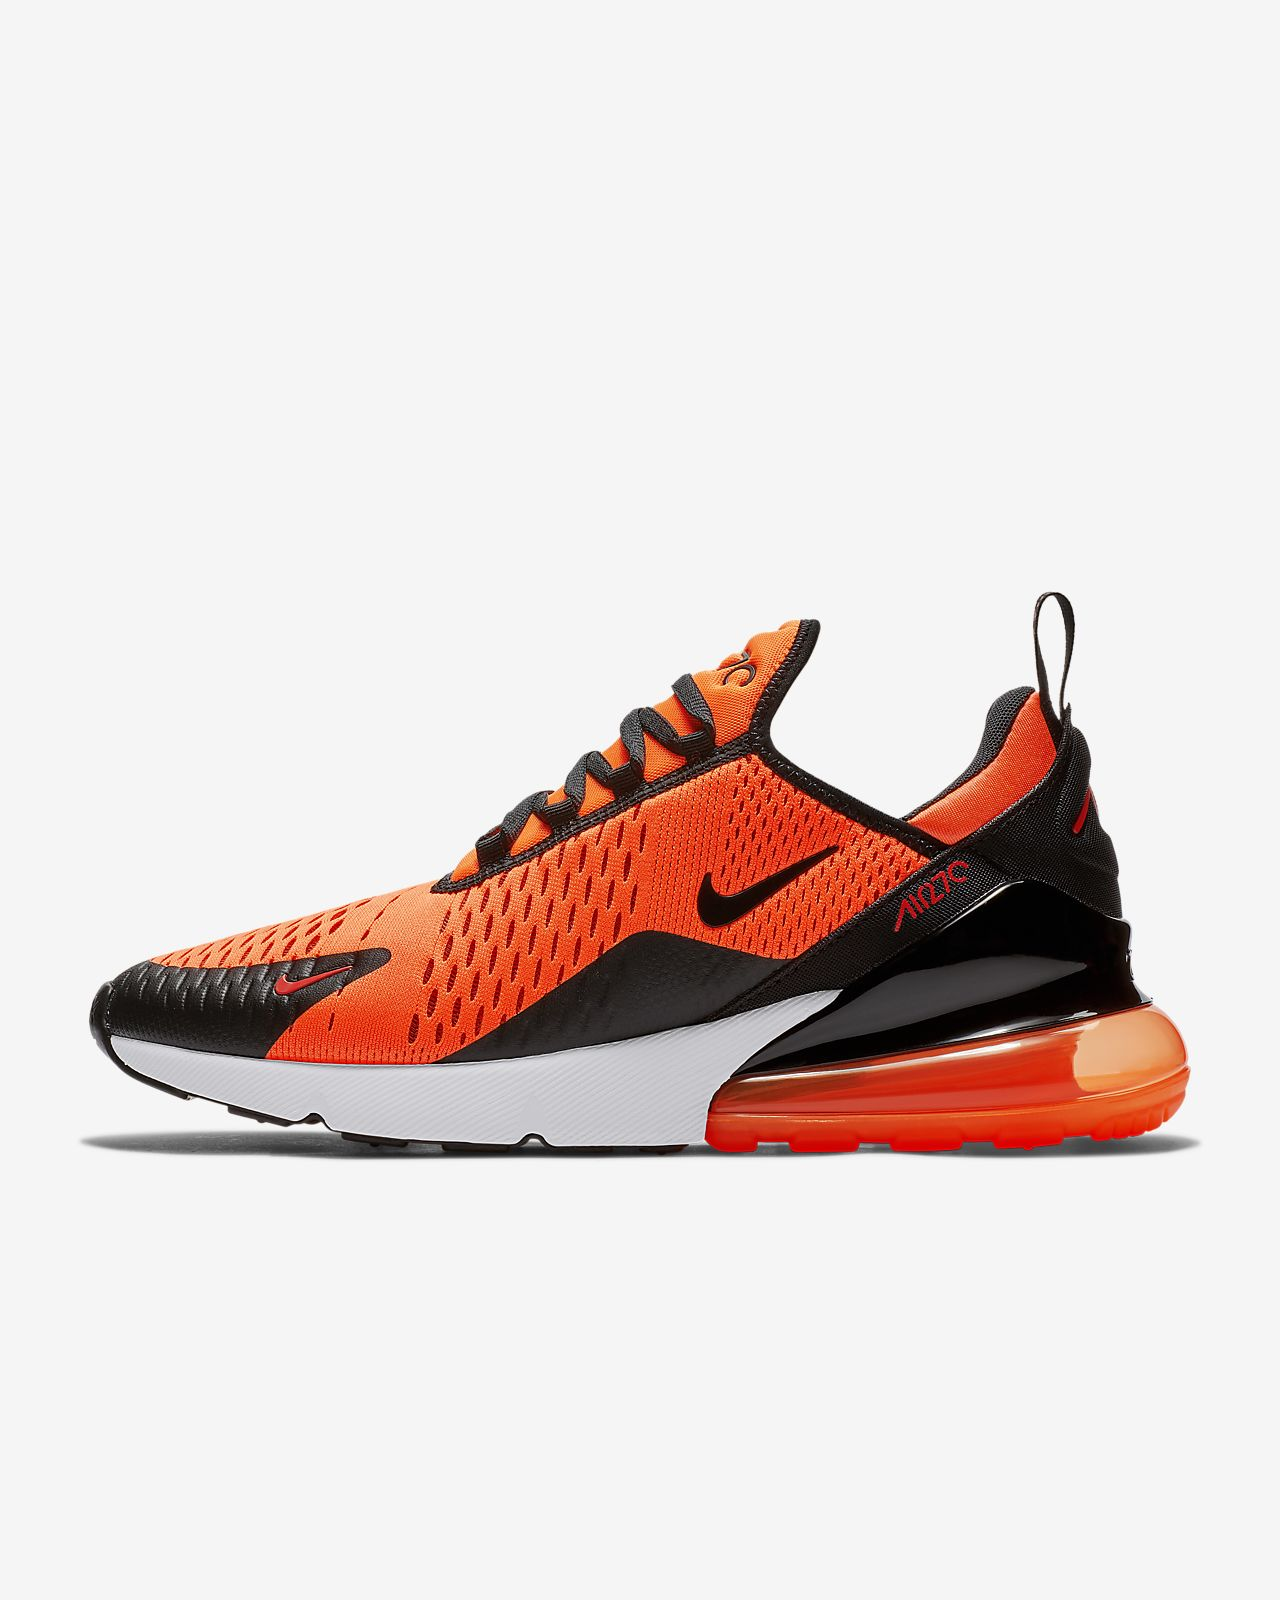 new product a635f 57bf5 Men s Shoe. Nike Air Max 270. CAD 200. Low Resolution ...